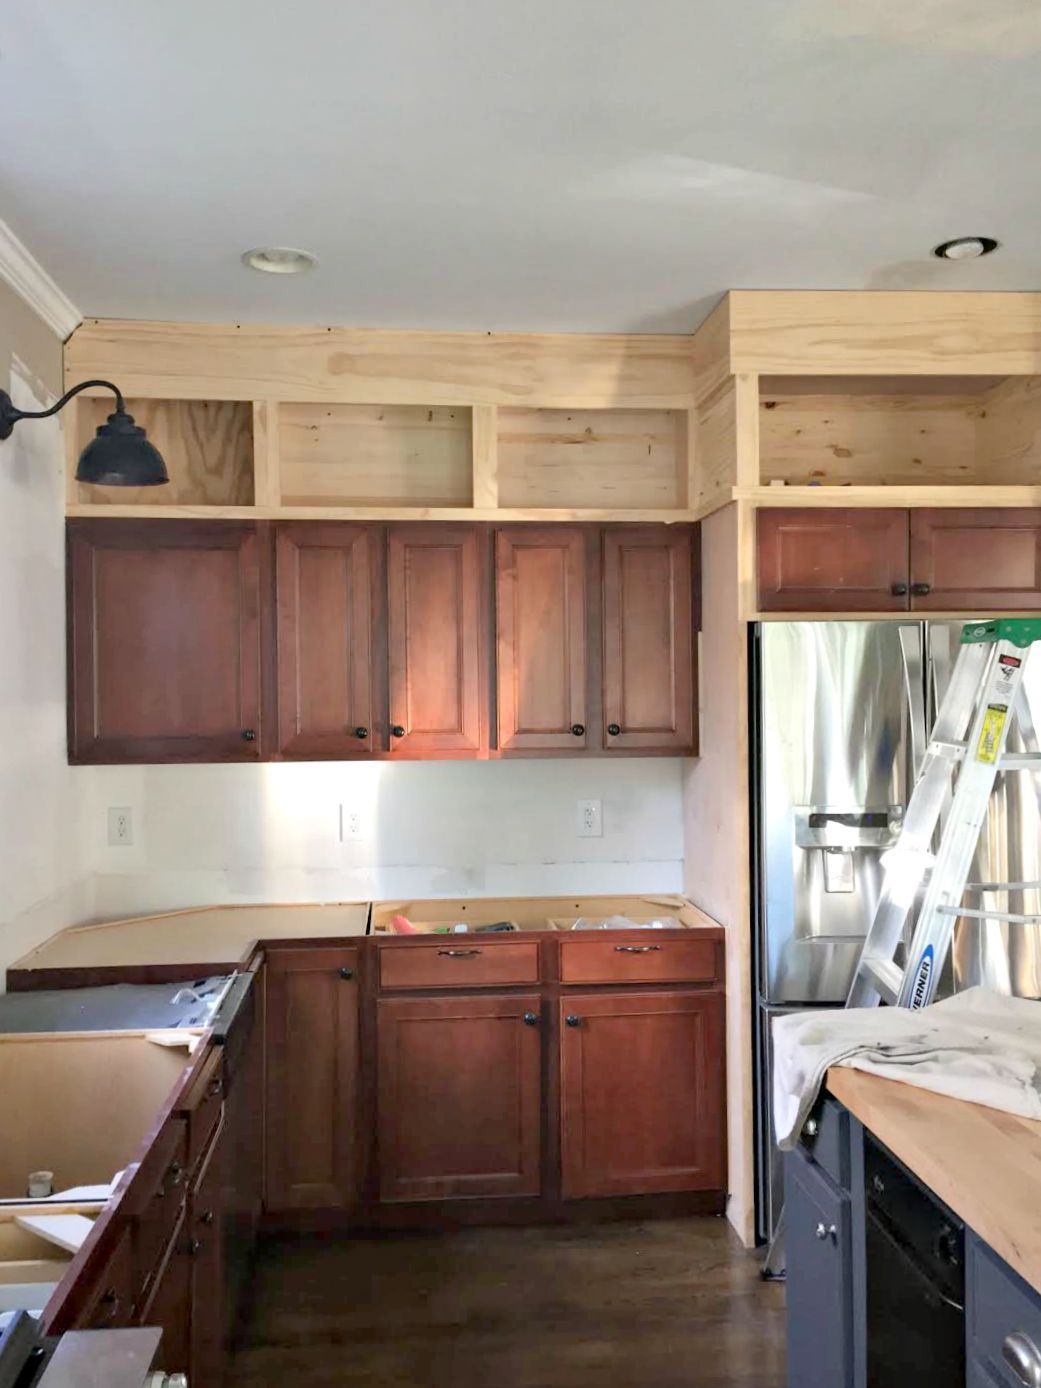 Kitchen Cabinets To The Ceiling Magnificent Building Cabinets Up To The Ceiling  Building Kitchen Cabinets . Design Ideas